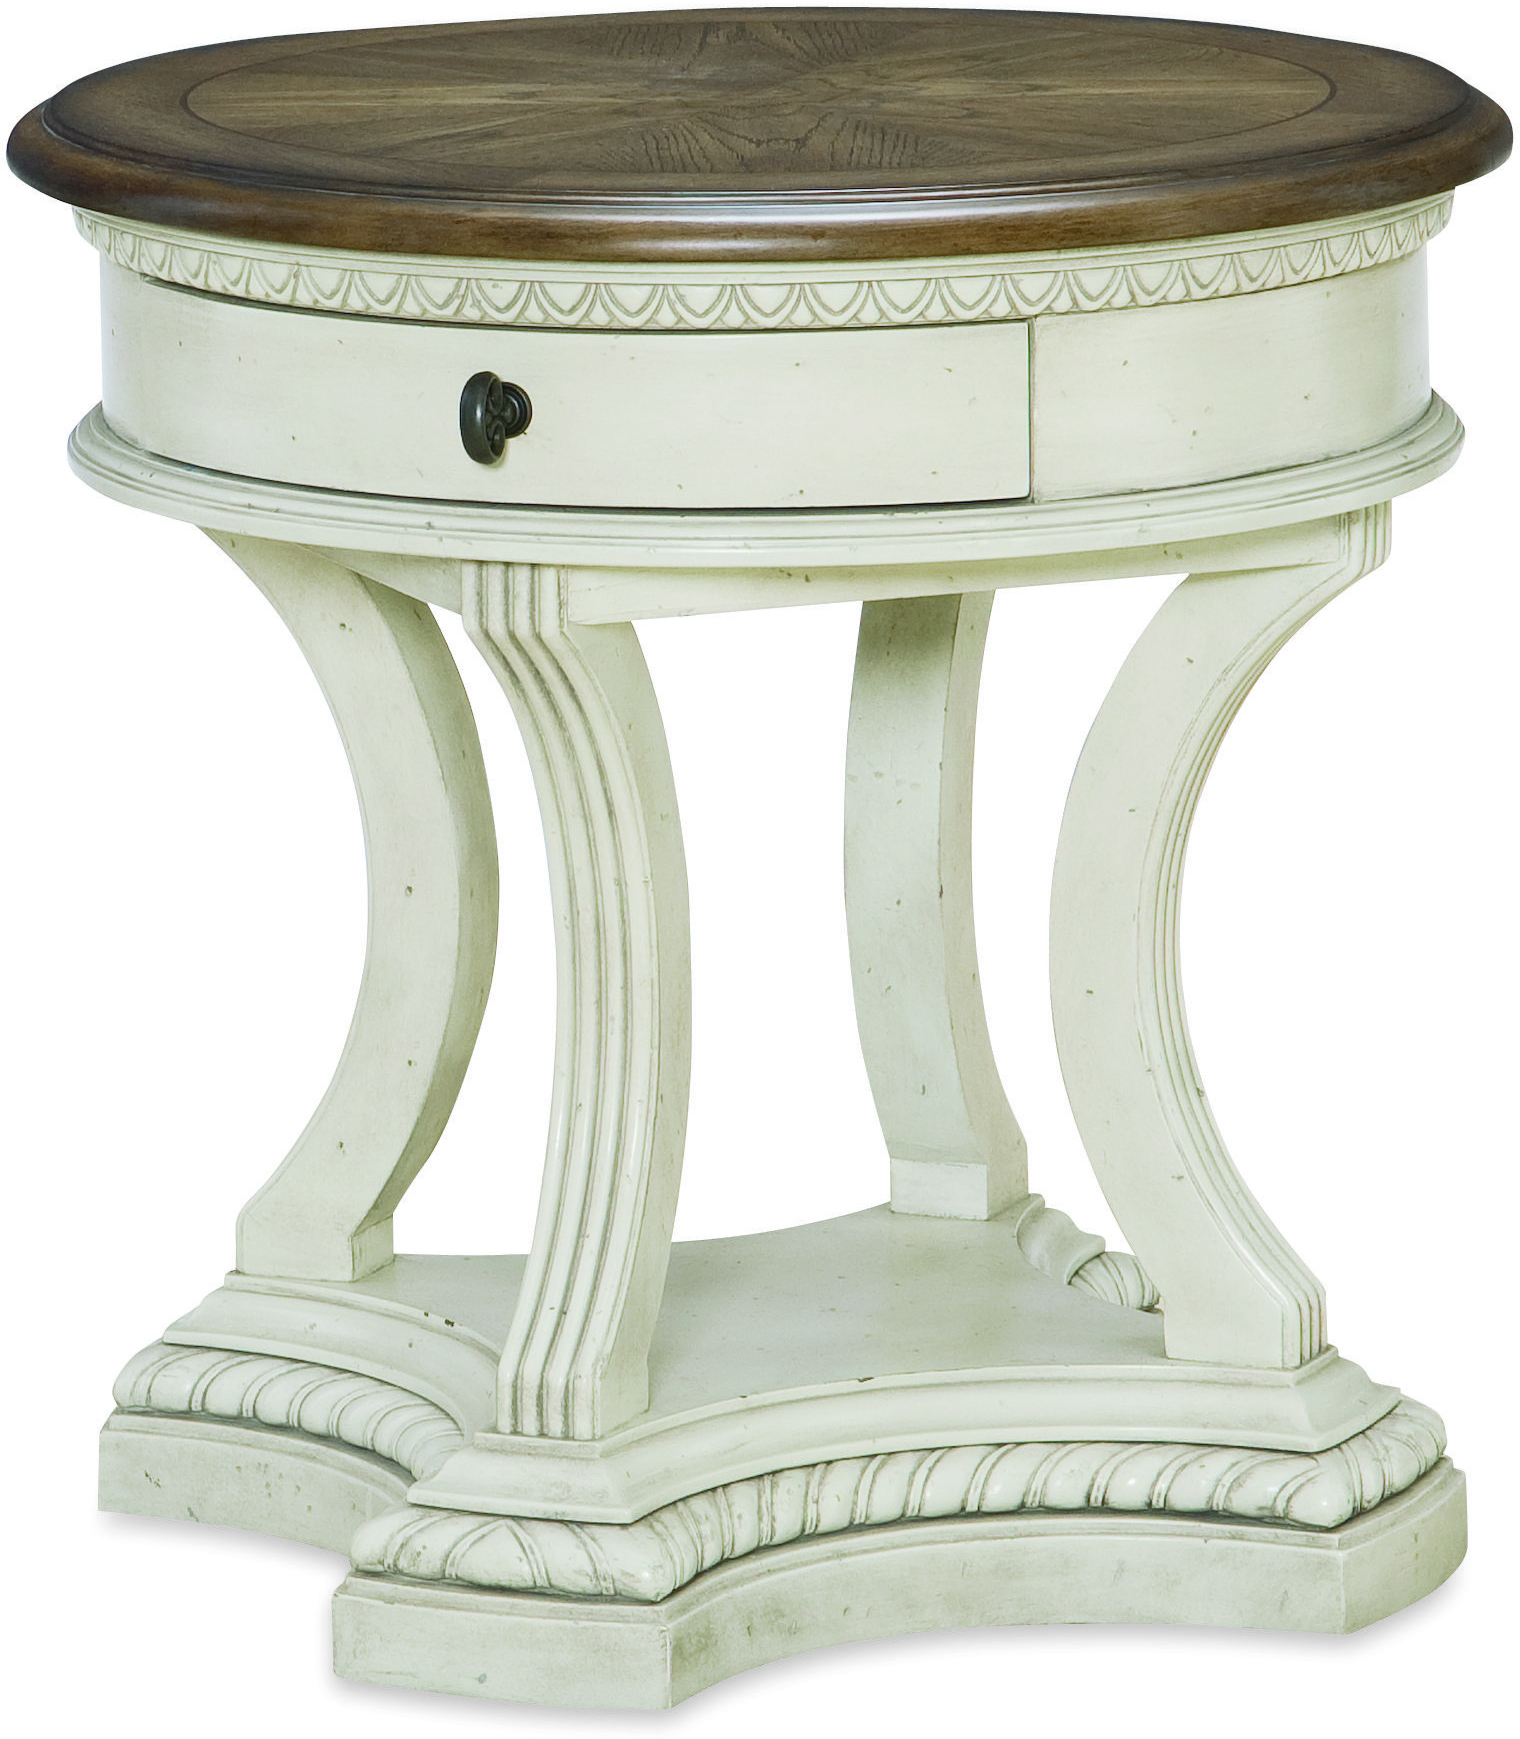 Legacy Classic Renaissance Round End Table  - Item Number: 5500-408